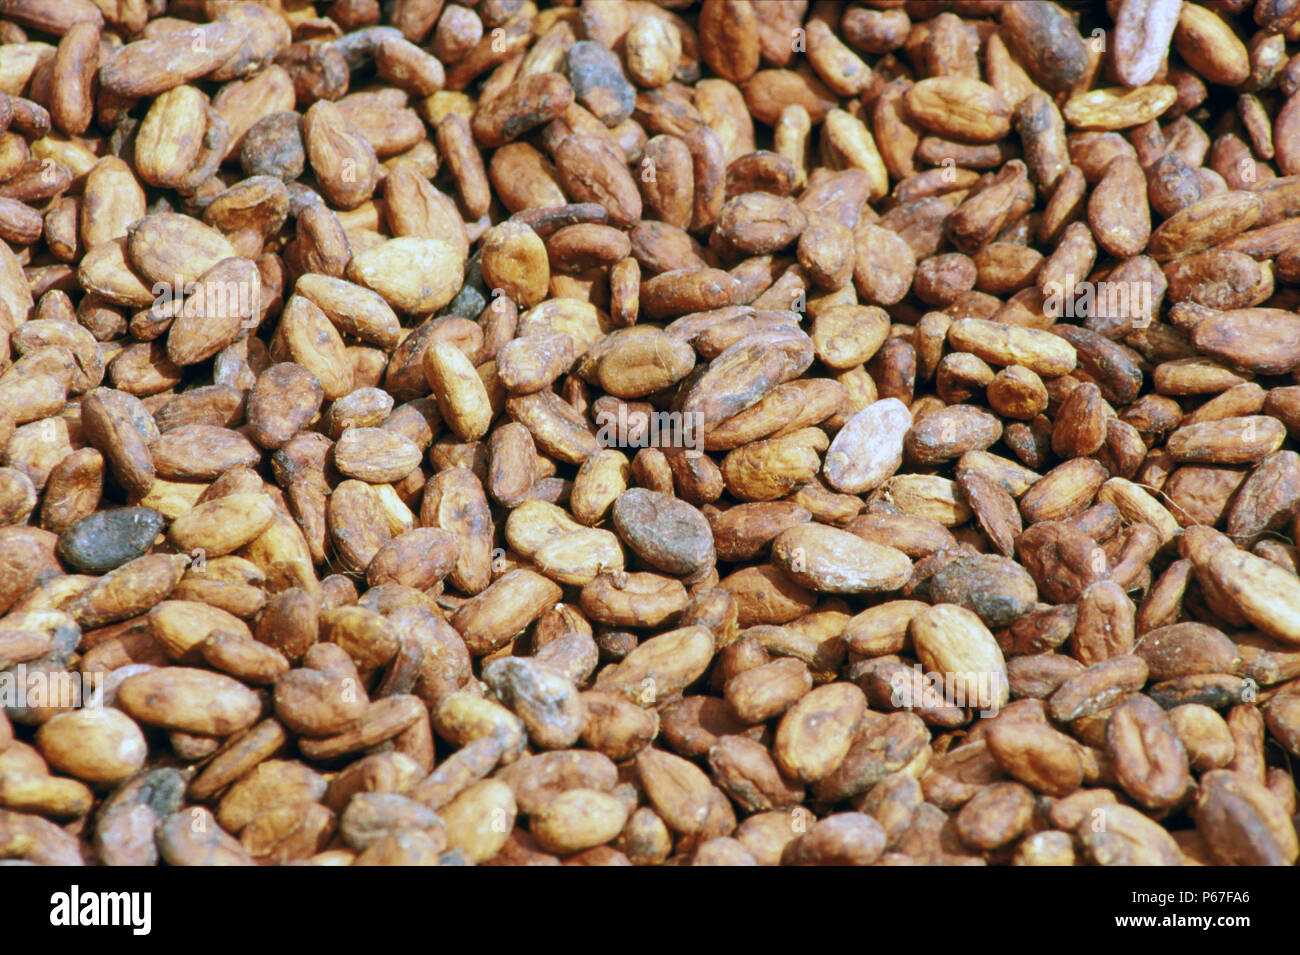 Cocoa Beans at the Cocoa Marketing Wharf at Takoradi Port on Thursday 6 June 1985. - Stock Image